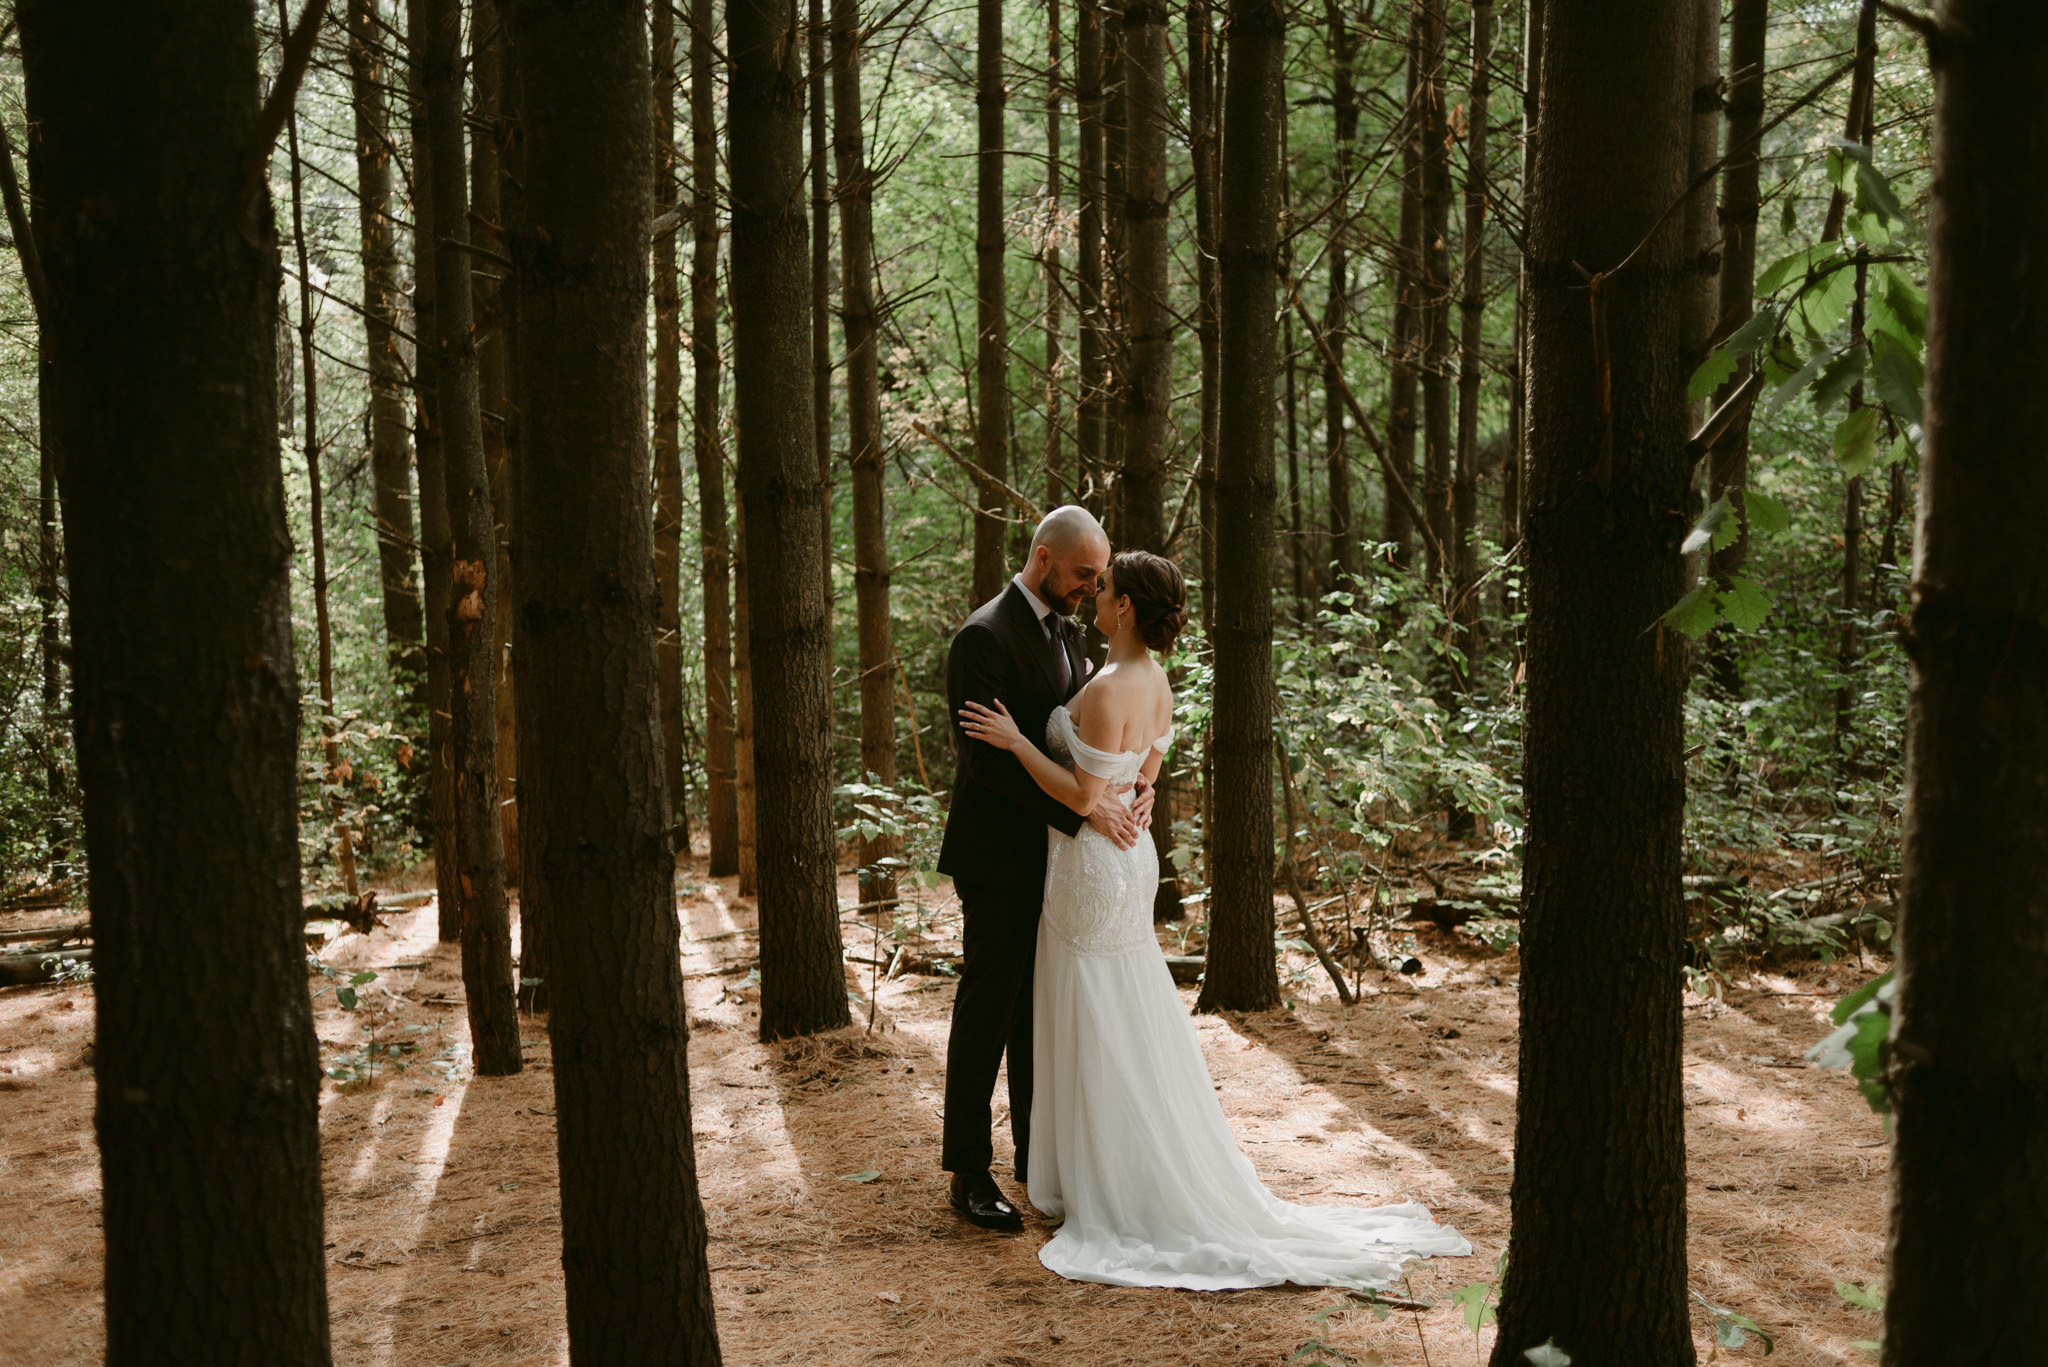 Bride and groom hugging in forest